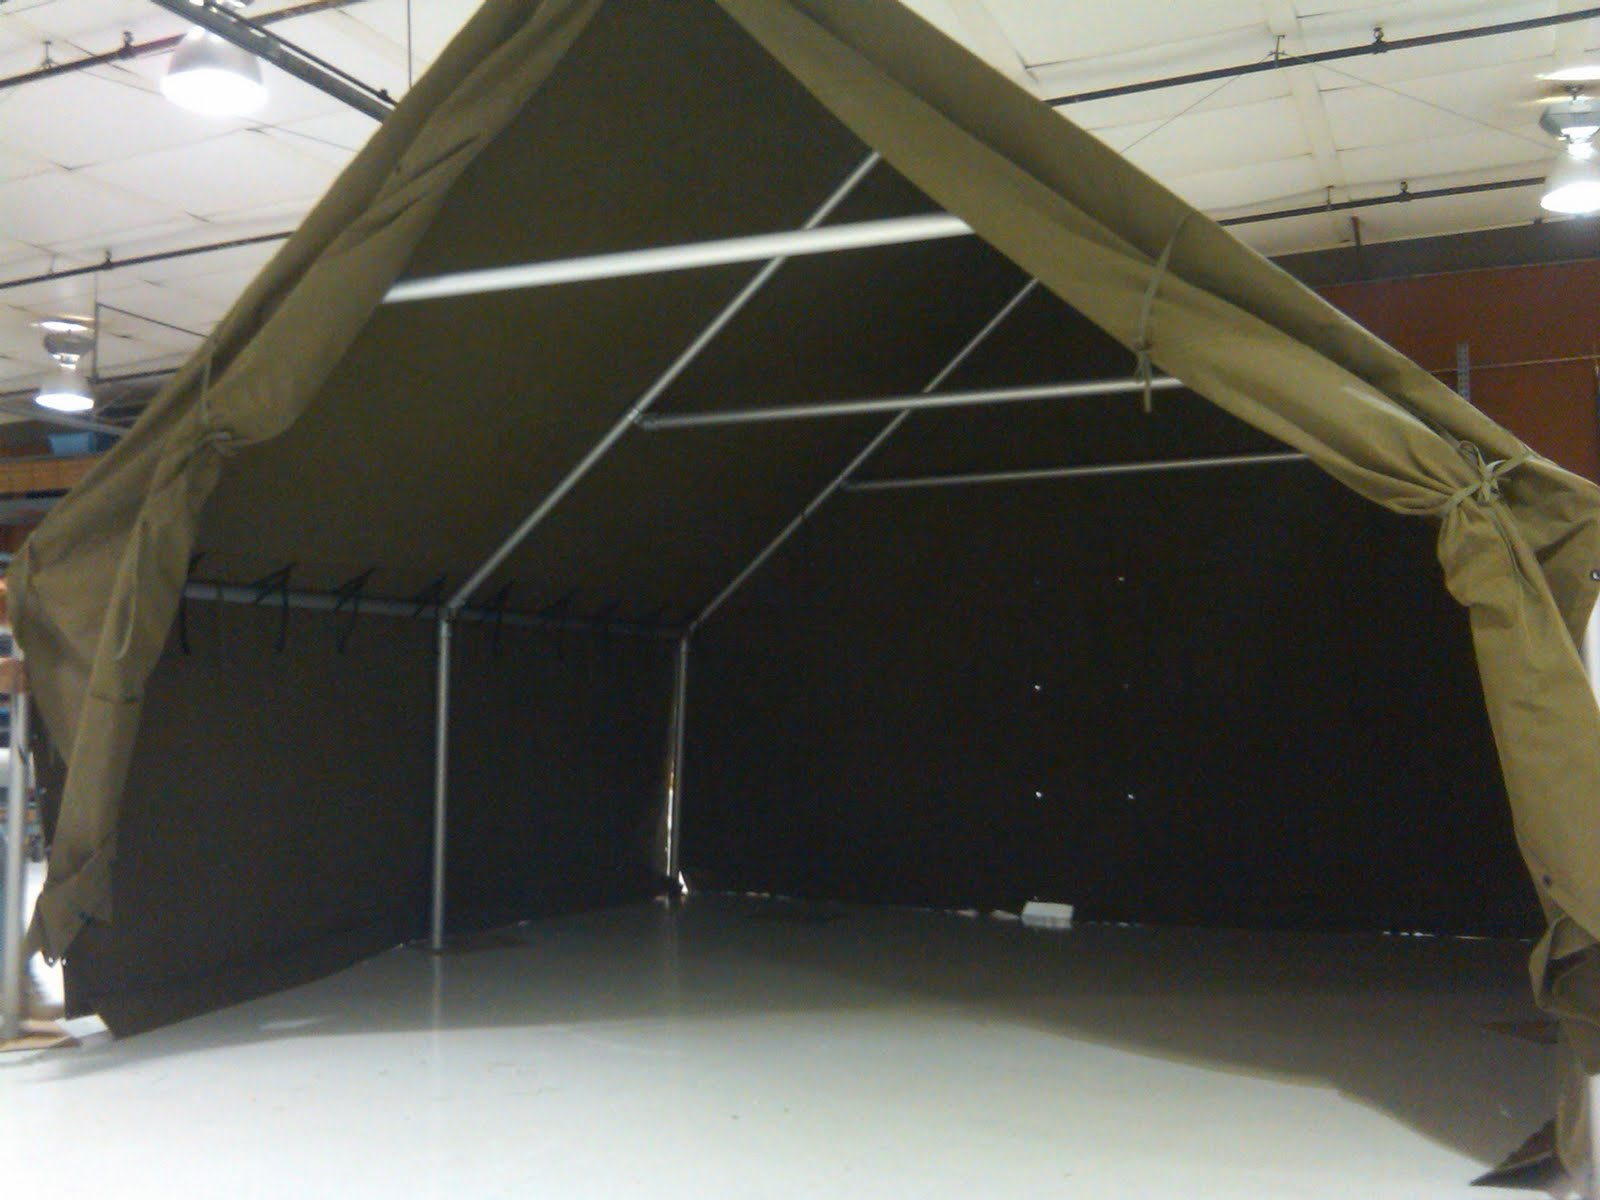 Recently Armbruster was contacted by a vendor with a special request for a WWII style tent. He wanted the look of a WWII Canvas Large Wall Tent for his ... & Custom WWII Tents for Vendors | Armbruster Tent Maker